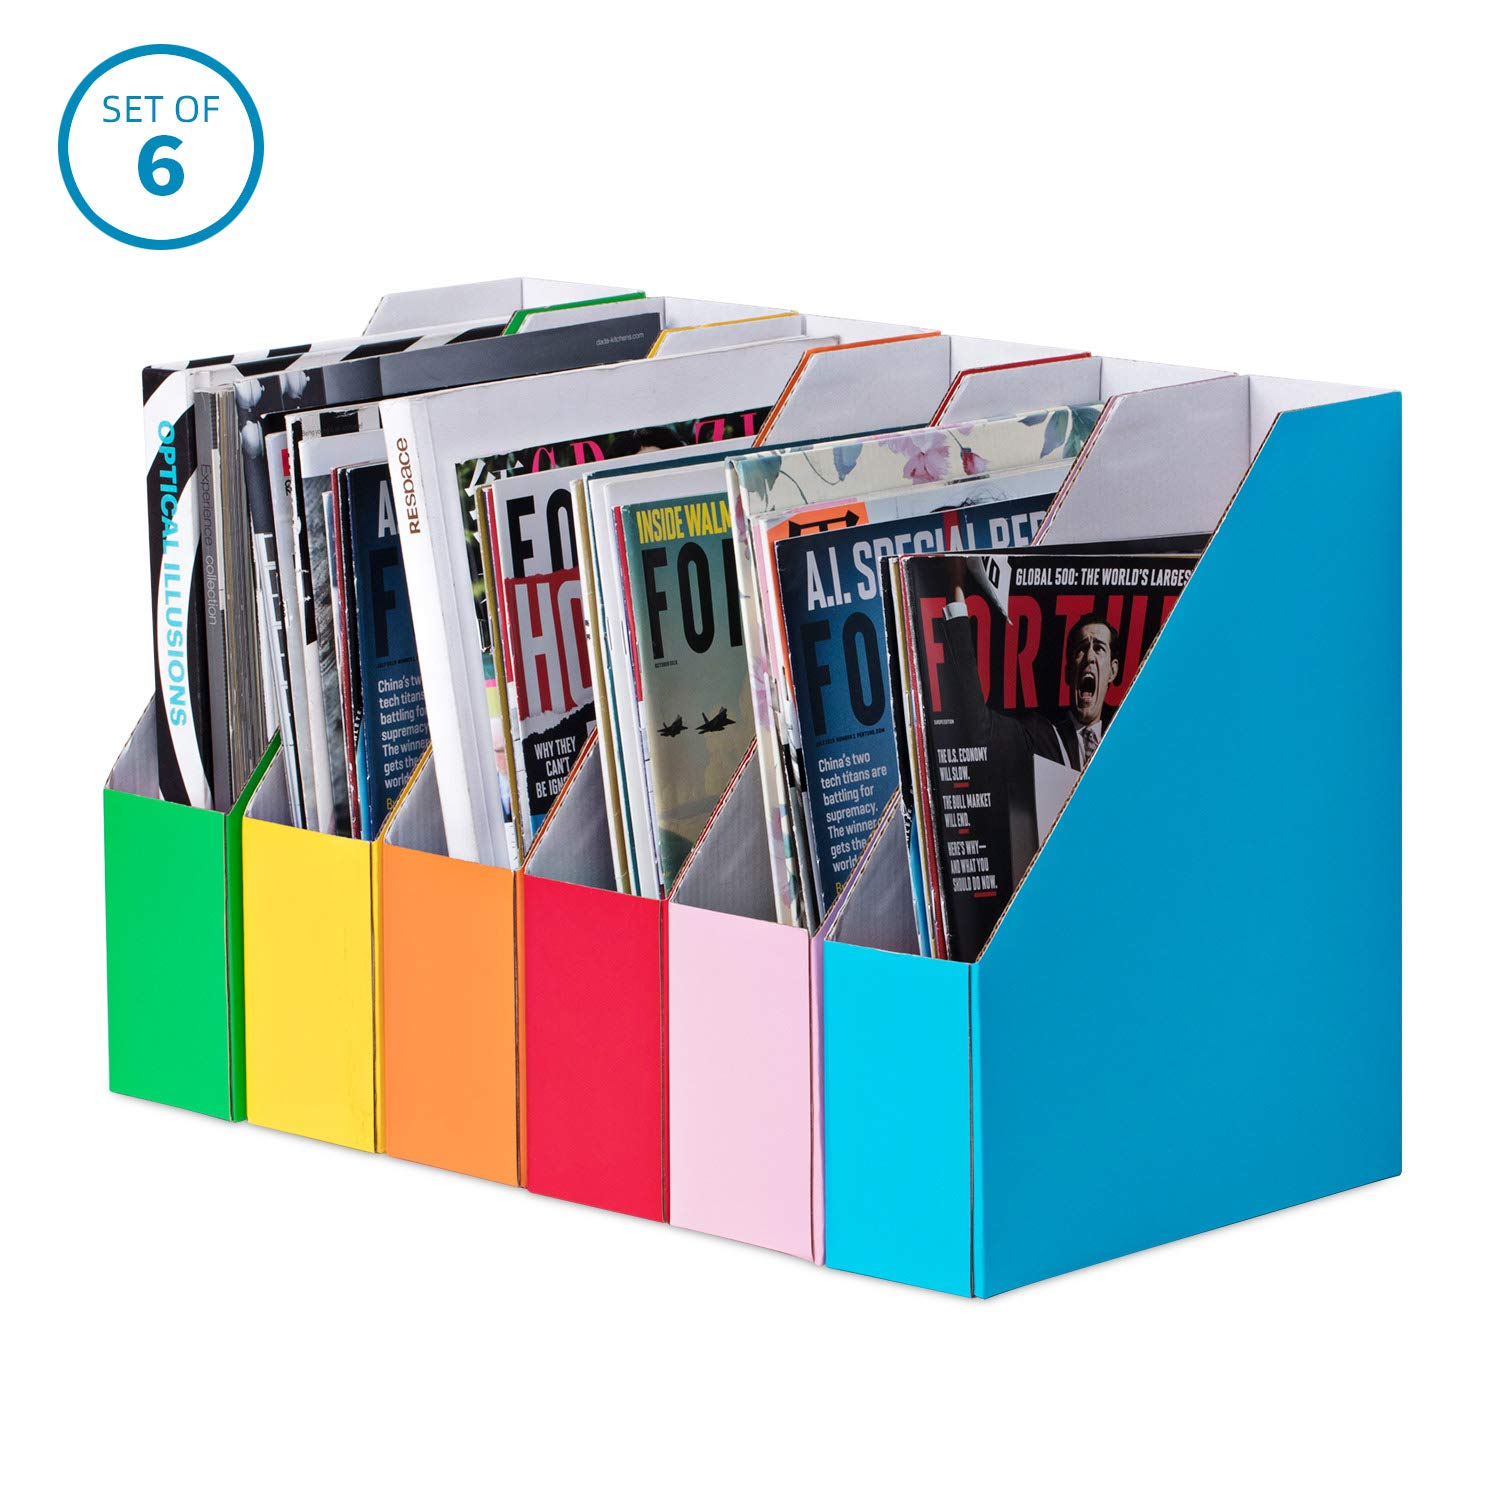 Magazine Holder File Organizer 6 Colors Included by Yezvil Essential (Image #1)